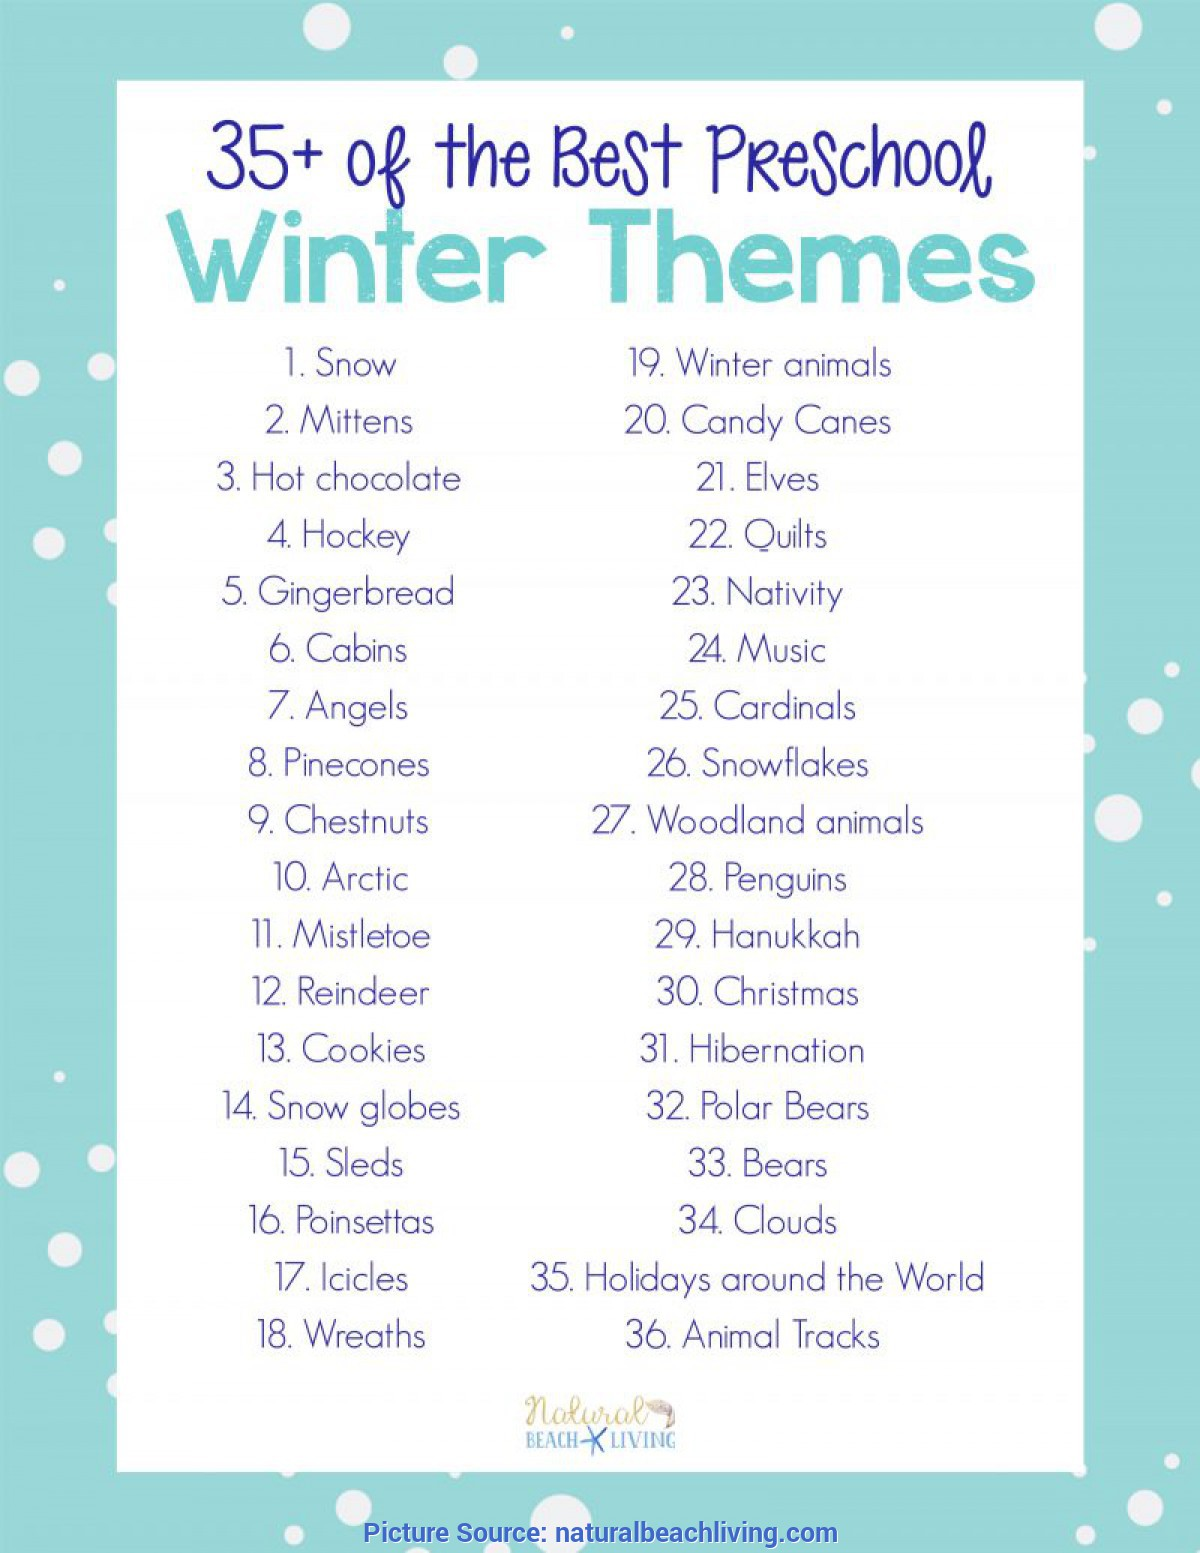 Typical Pre K Lesson Plans About Winter 35+ Best Winter Preschool Themes And Lesson Plans - Natural Beac